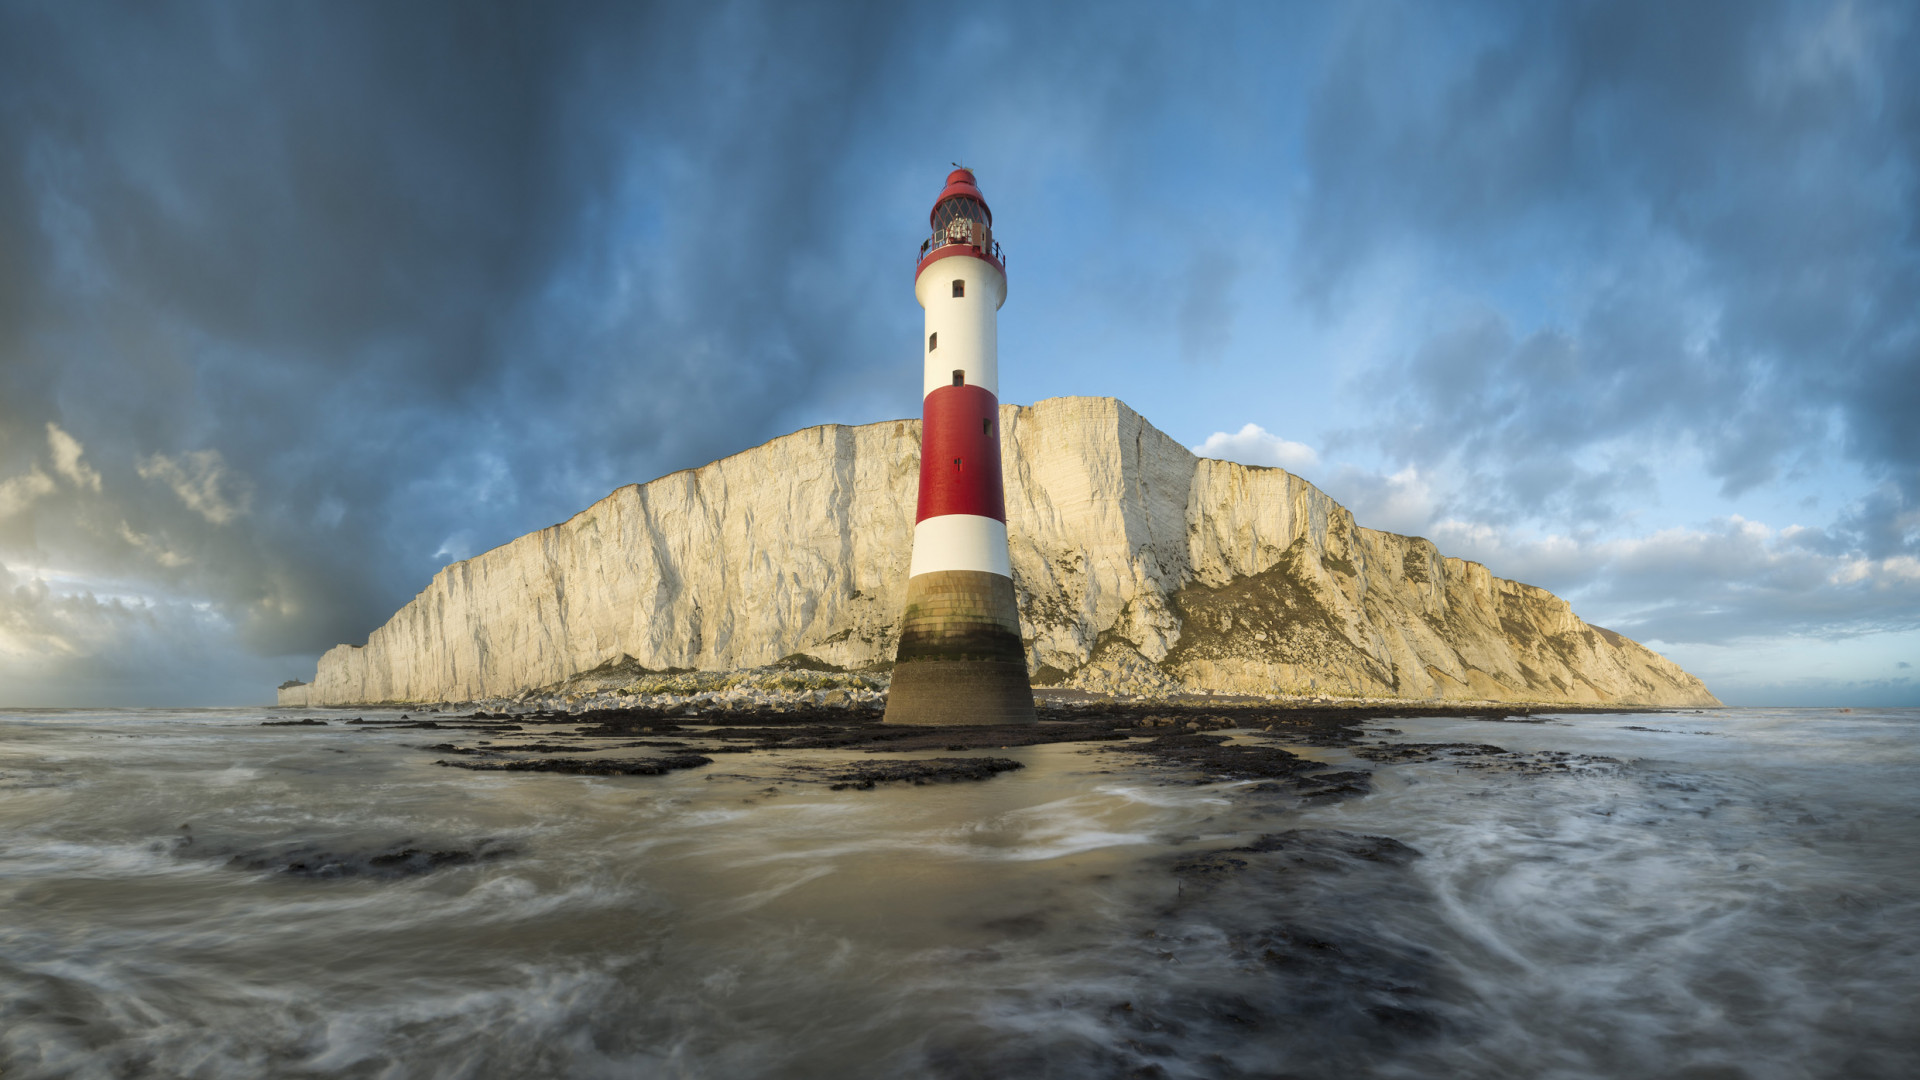 Shot of Beachy Head lighthouse from the sea near Eastbourne